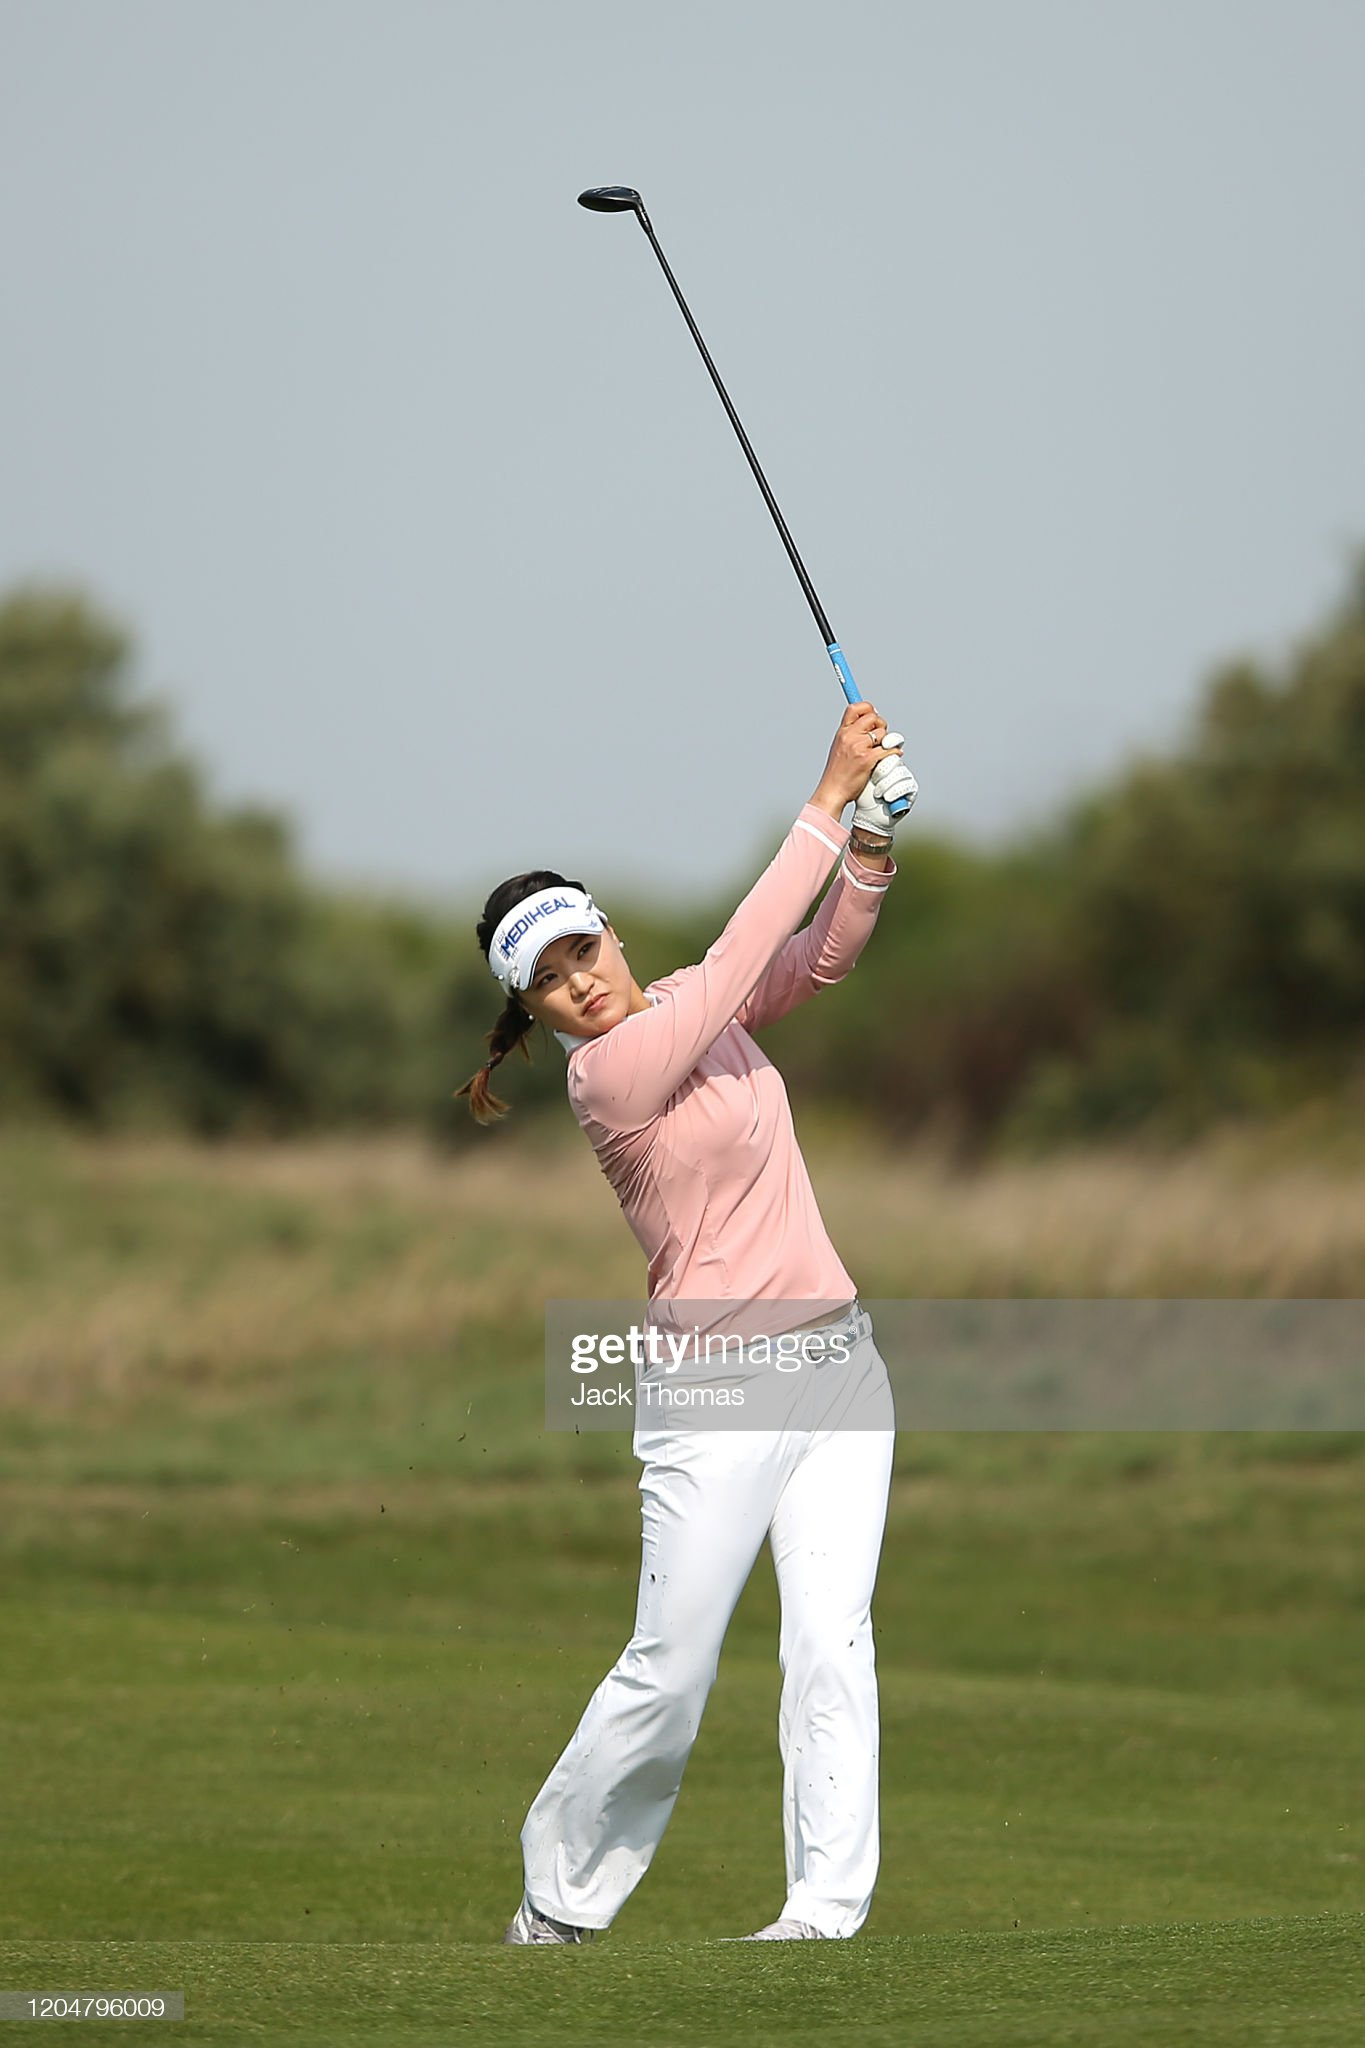 https://media.gettyimages.com/photos/ryu-soyeon-of-south-korea-plays-her-second-shot-on-the-9th-beach-picture-id1204796009?s=2048x2048